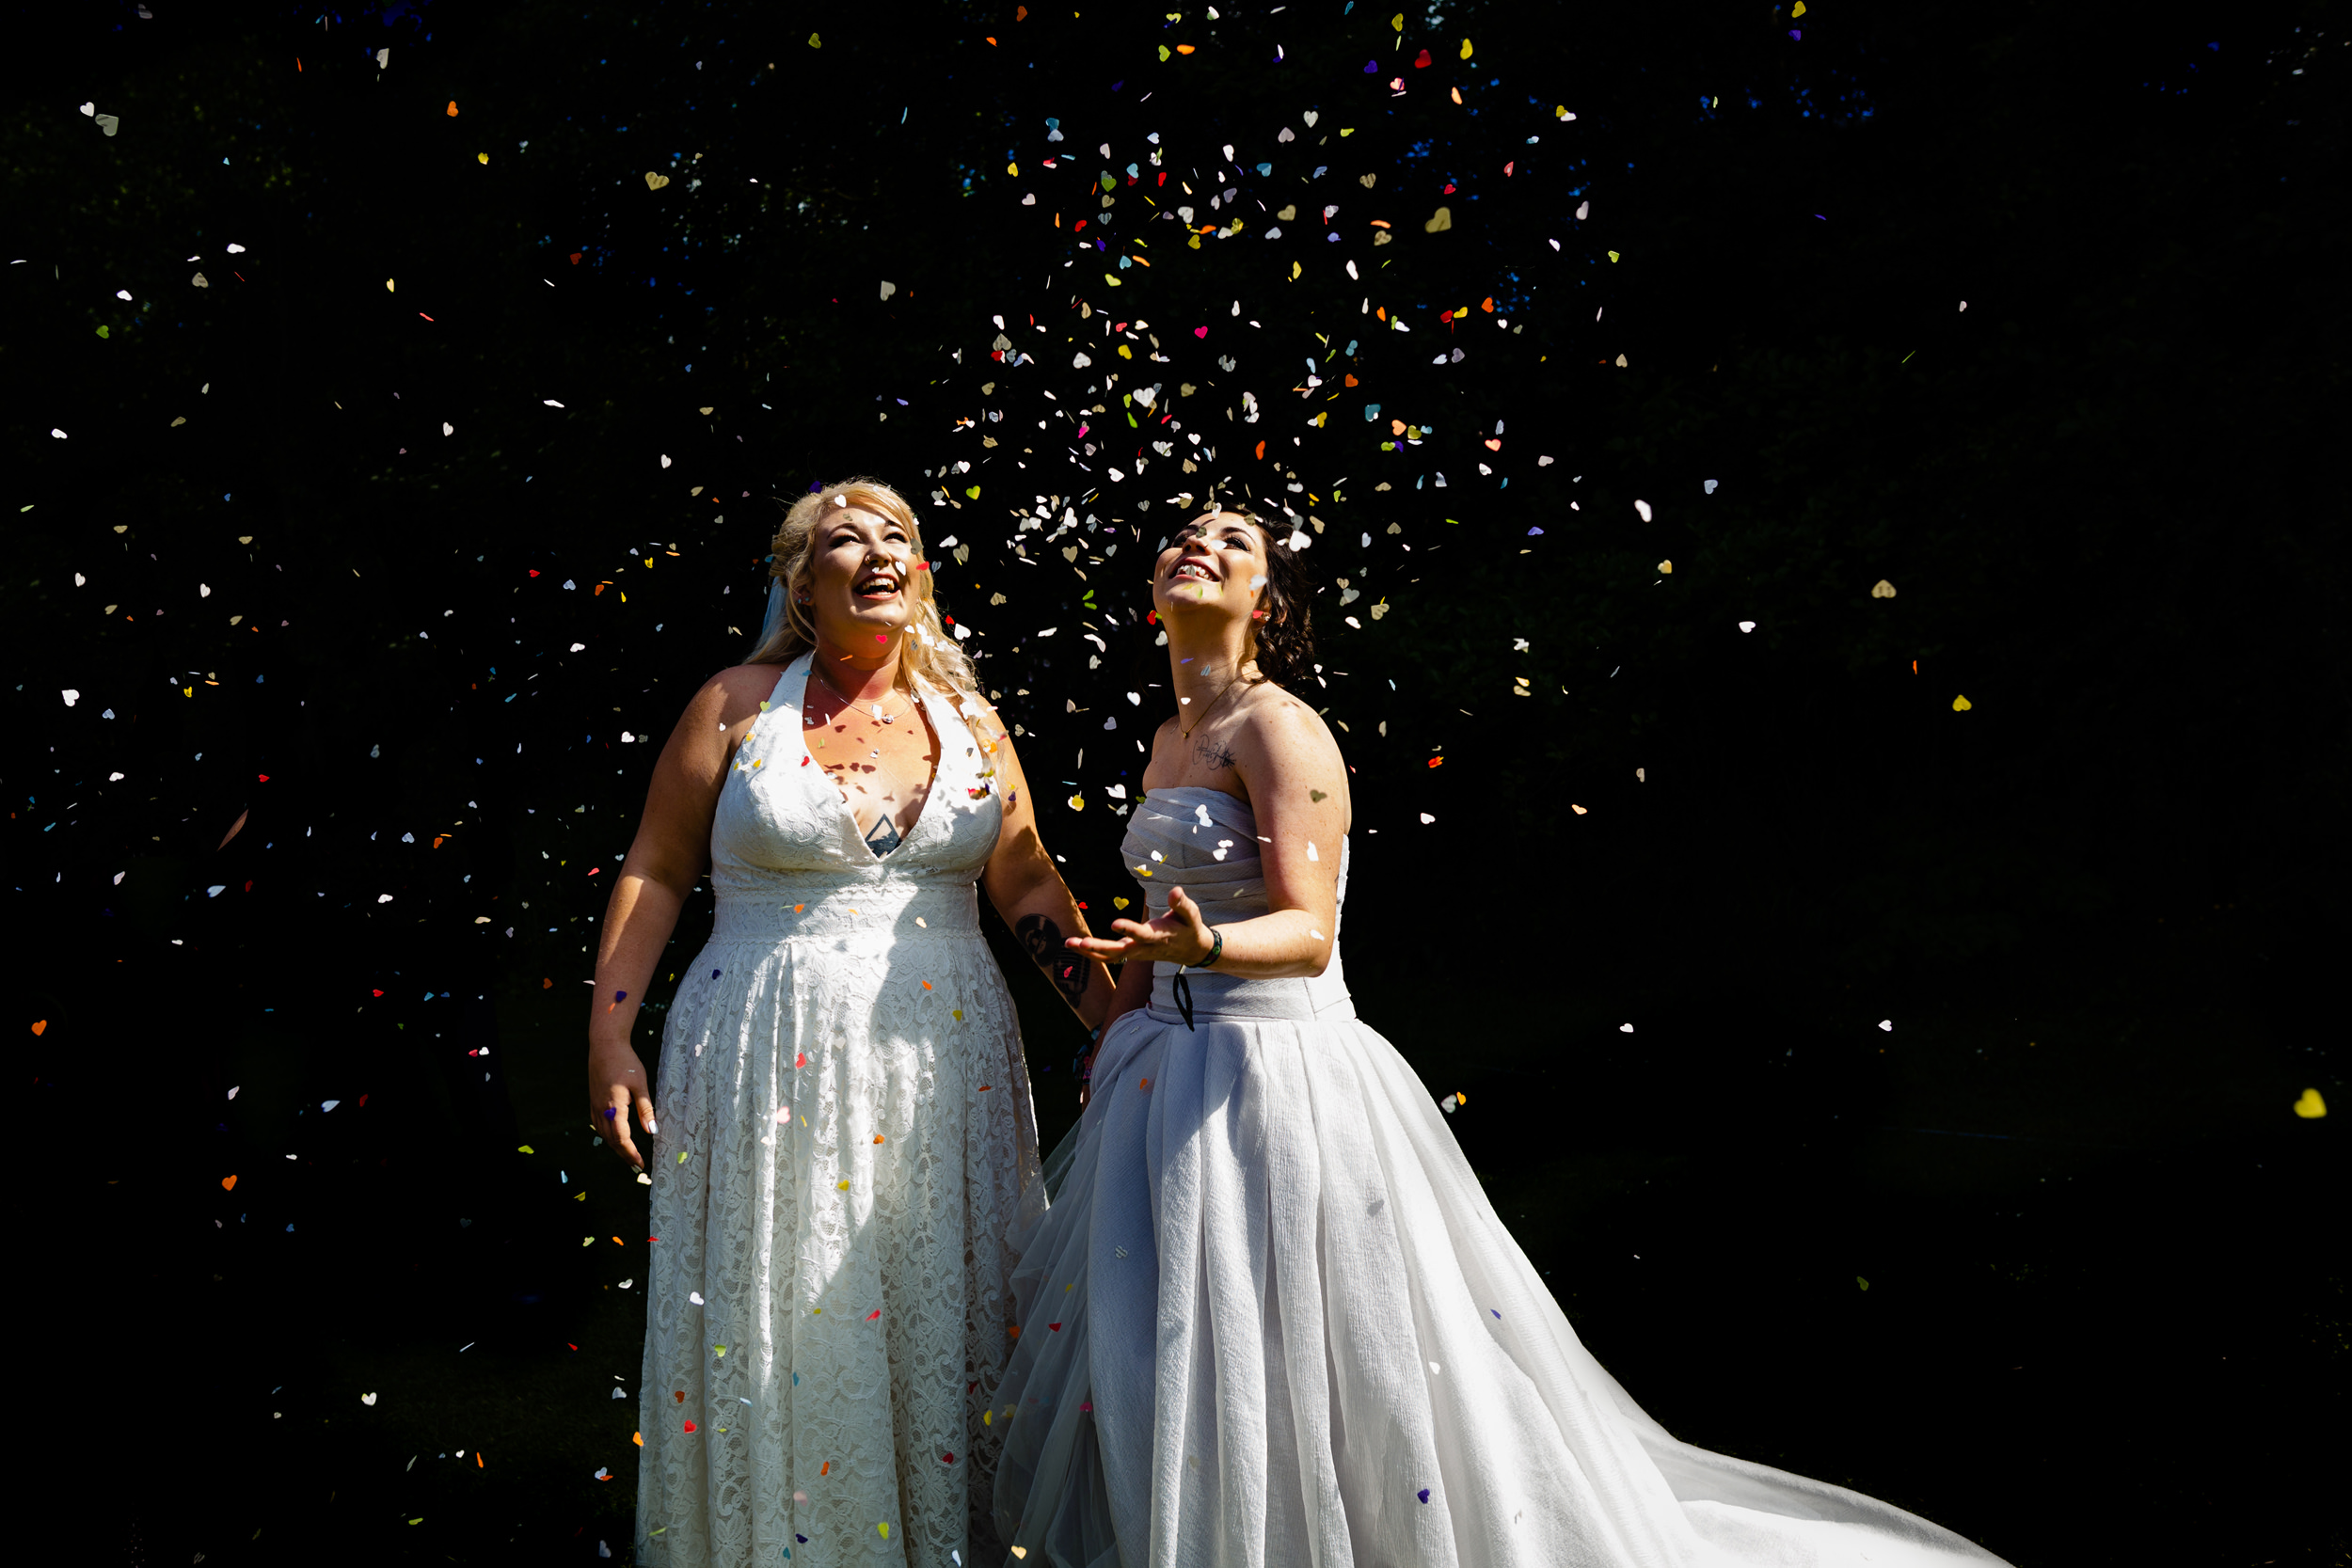 two brides being showered in confetti. plough inn, hathersage wedding photography by emma and rich.